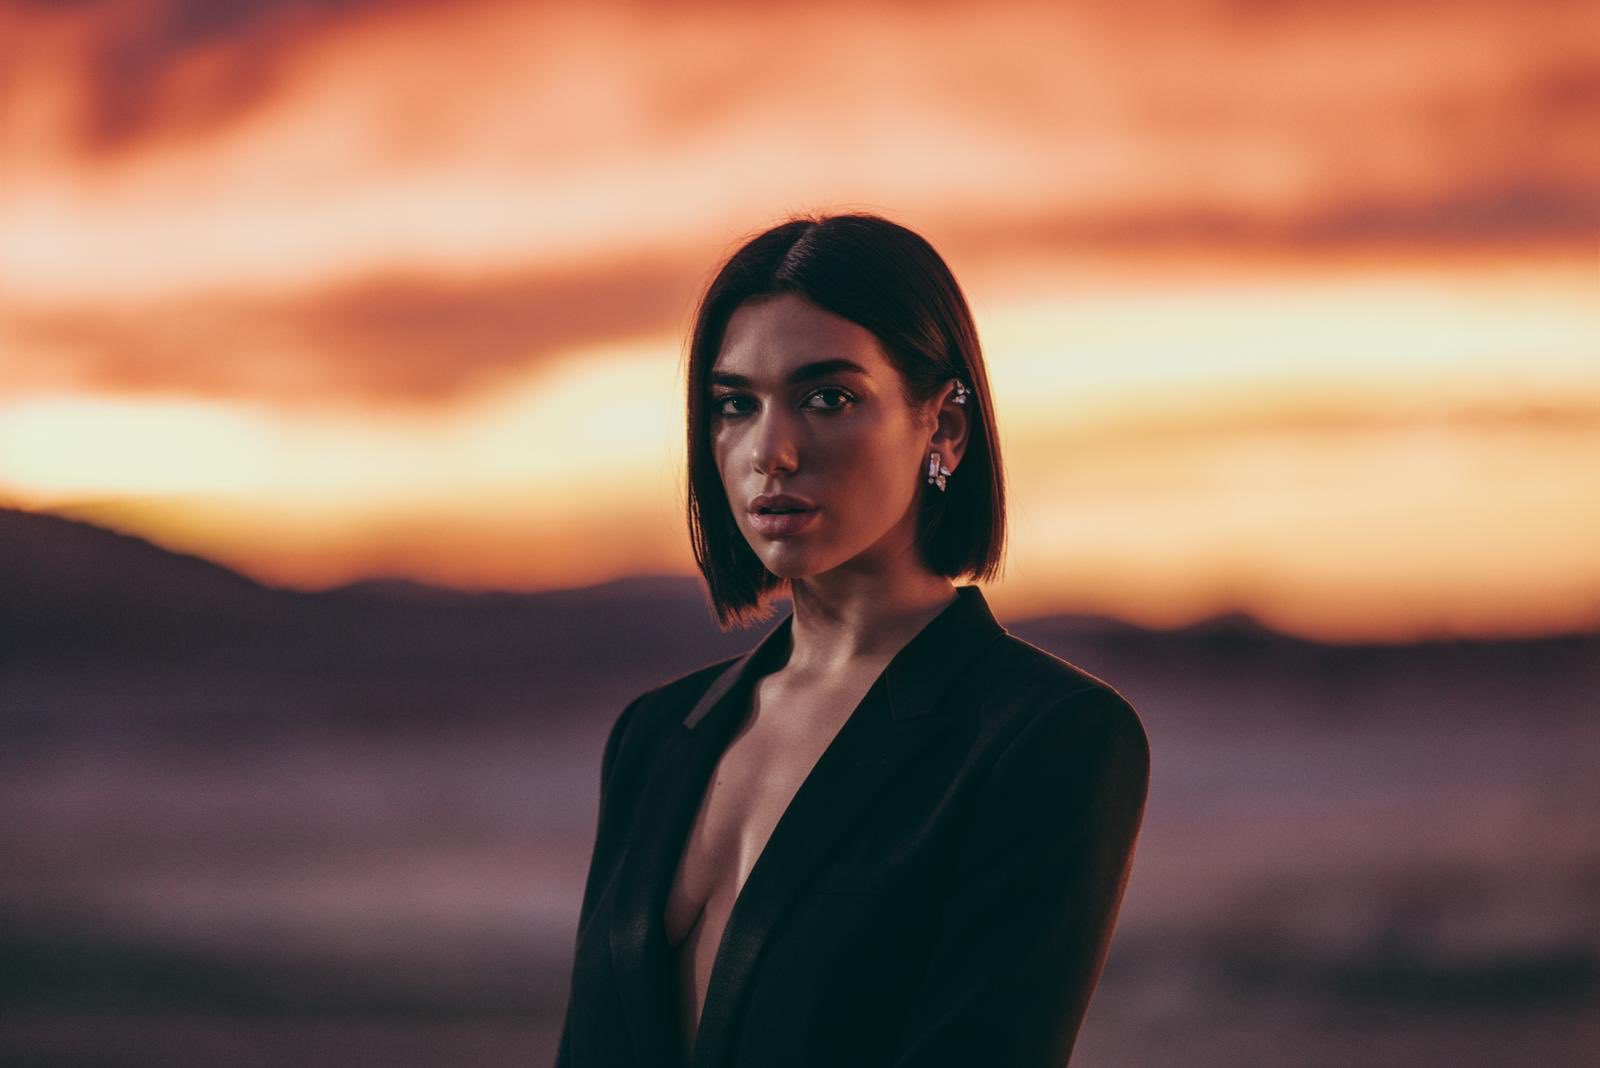 Dua Lipa Jacket Wallpapers - Dua Lipa Net Worth, Pics, Wallpapers, Career and Biography